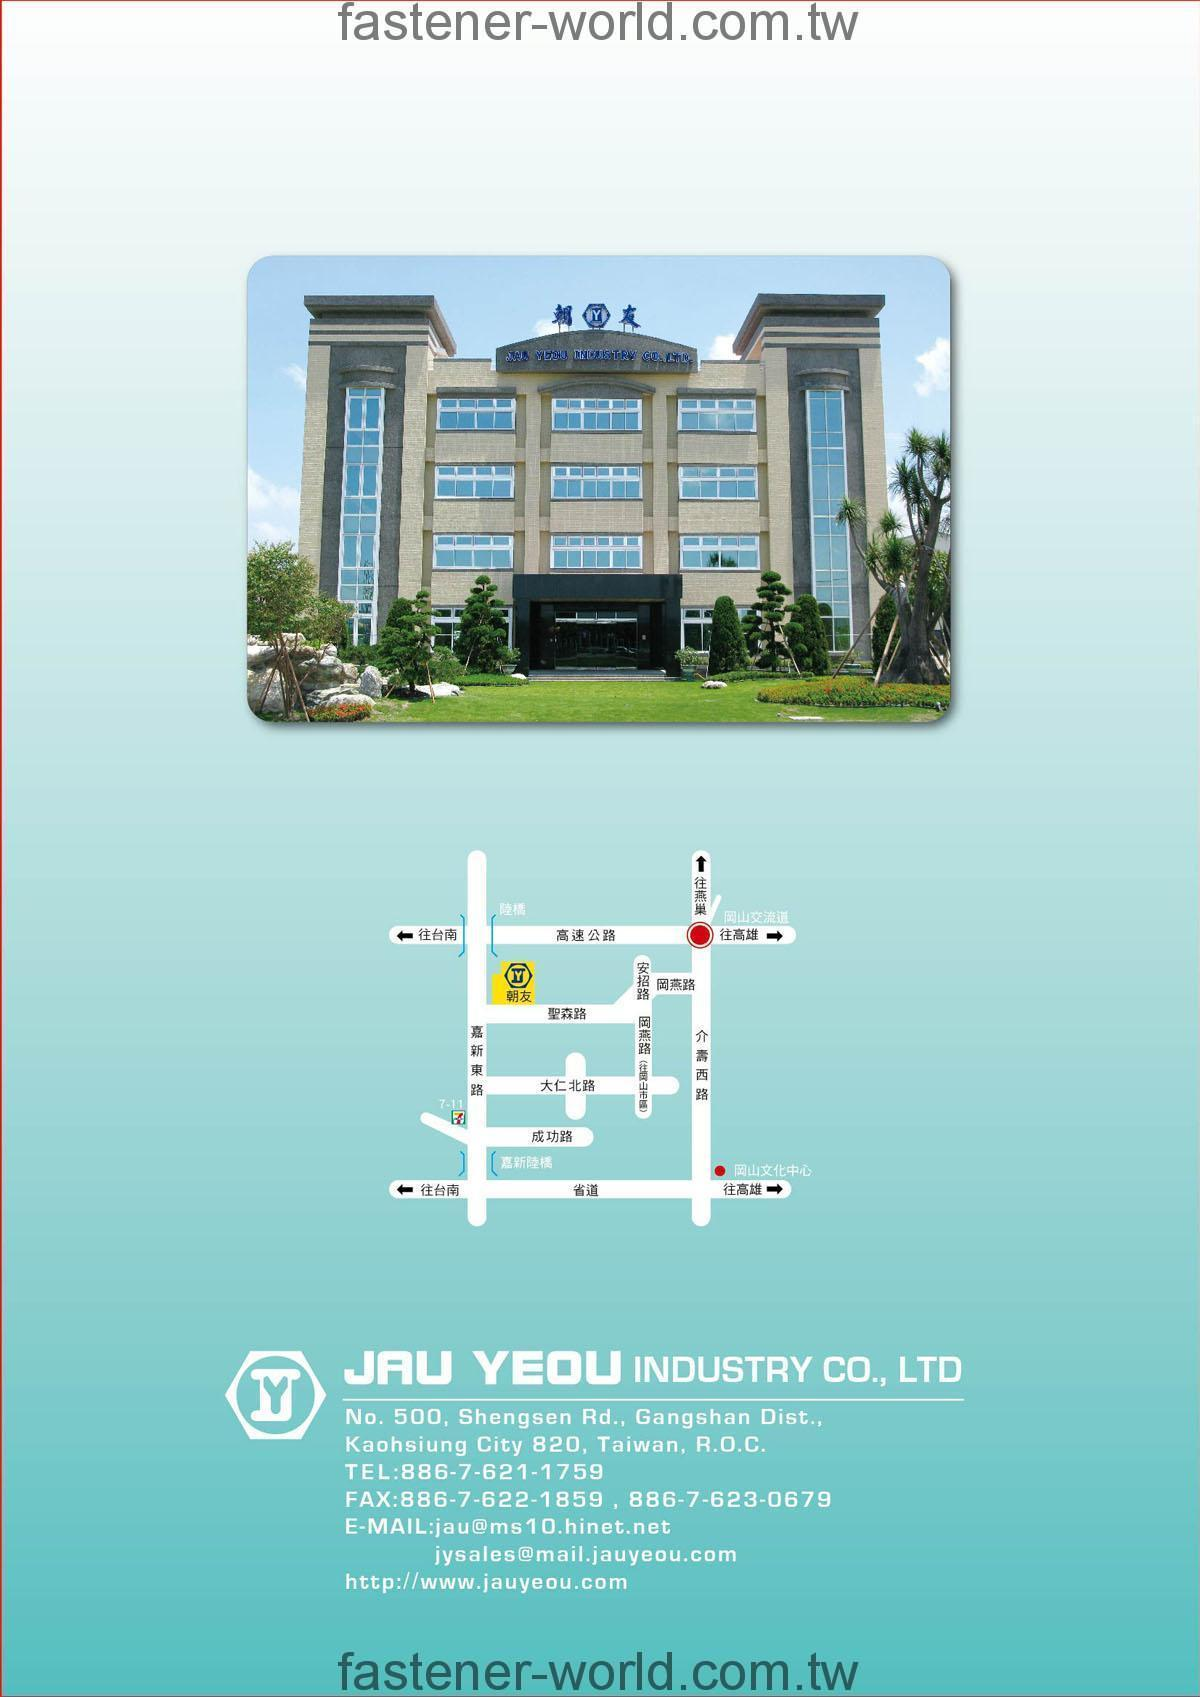 JAU YEOU INDUSTRY CO., LTD. Online Catalogues